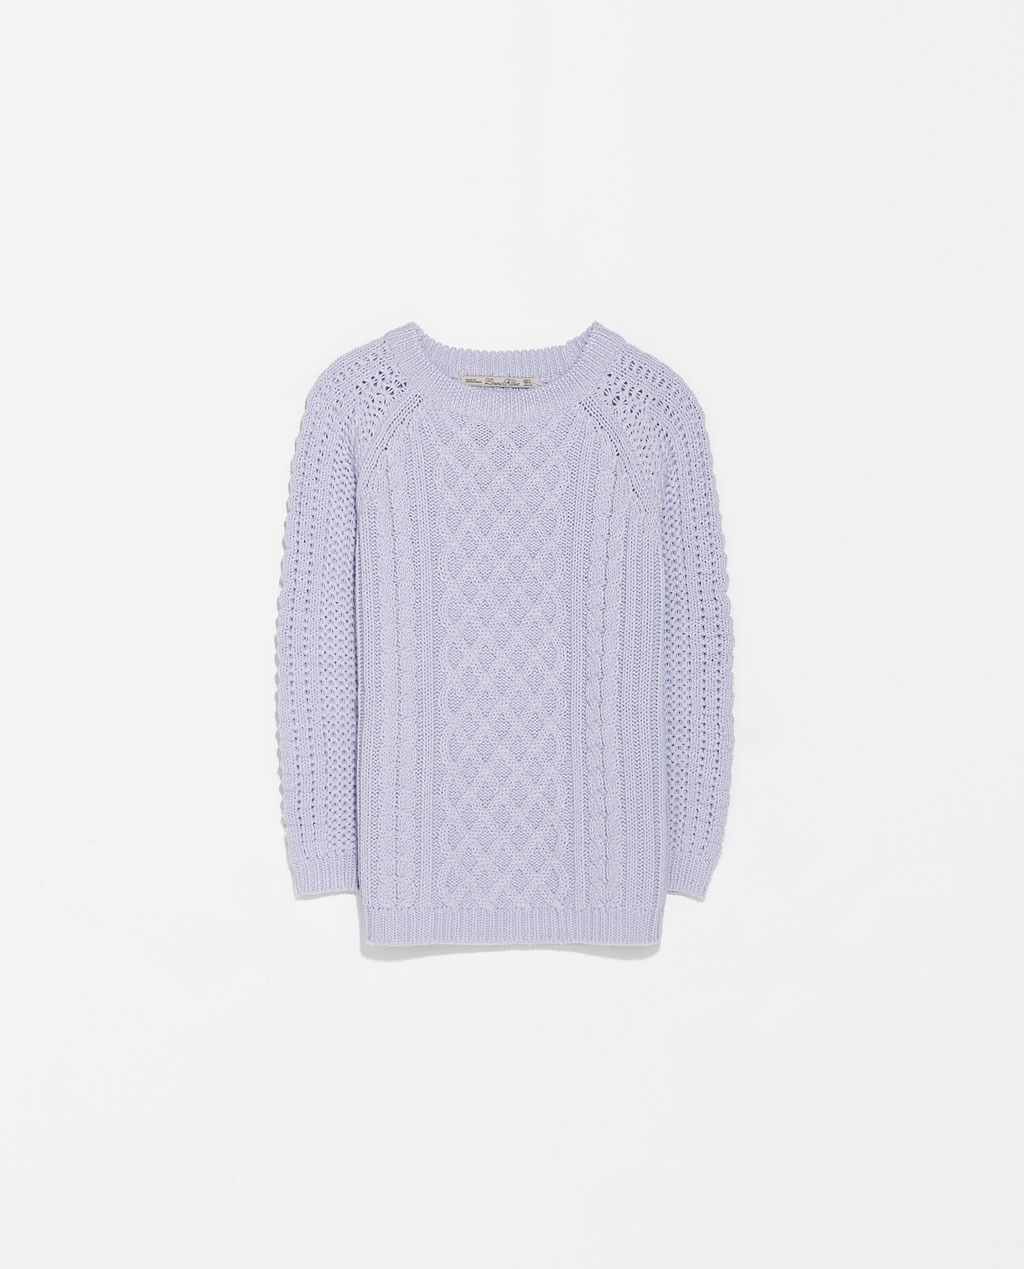 Fancy Knit Sweater - neckline: round neck; style: standard; pattern: cable knit; predominant colour: lilac; occasions: casual, creative work; length: standard; fibres: acrylic - 100%; fit: standard fit; sleeve length: 3/4 length; sleeve style: standard; texture group: knits/crochet; pattern type: knitted - big stitch; pattern size: standard; trends: sorbet shades; season: s/s 2014